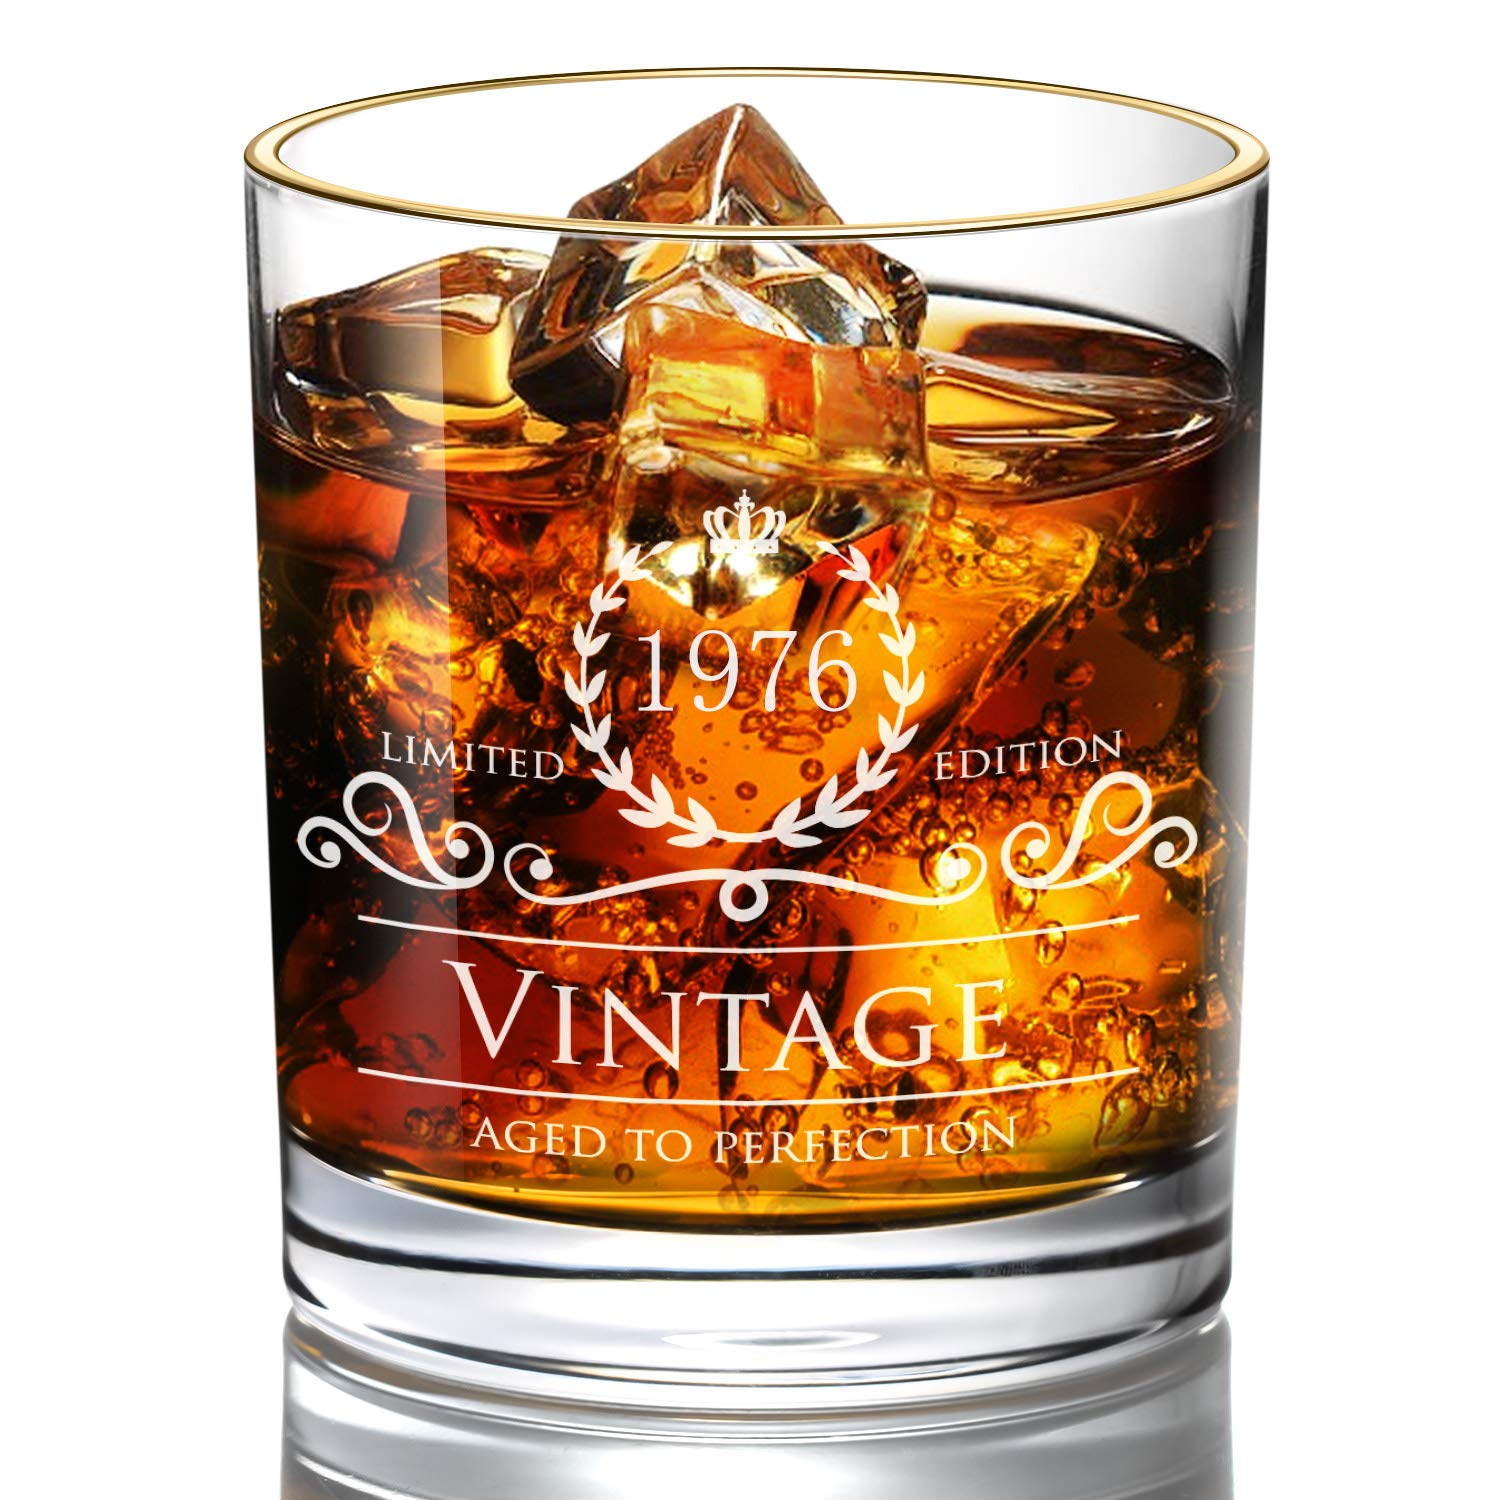 Birthday 24K Gold Whiskey Glass Vintage 1963 Aged to Perfection Engraved • 10oz Rocks Glass • Great Gift for Father • Grandfather • Husband • Son • Friend (1943) Lovinpro